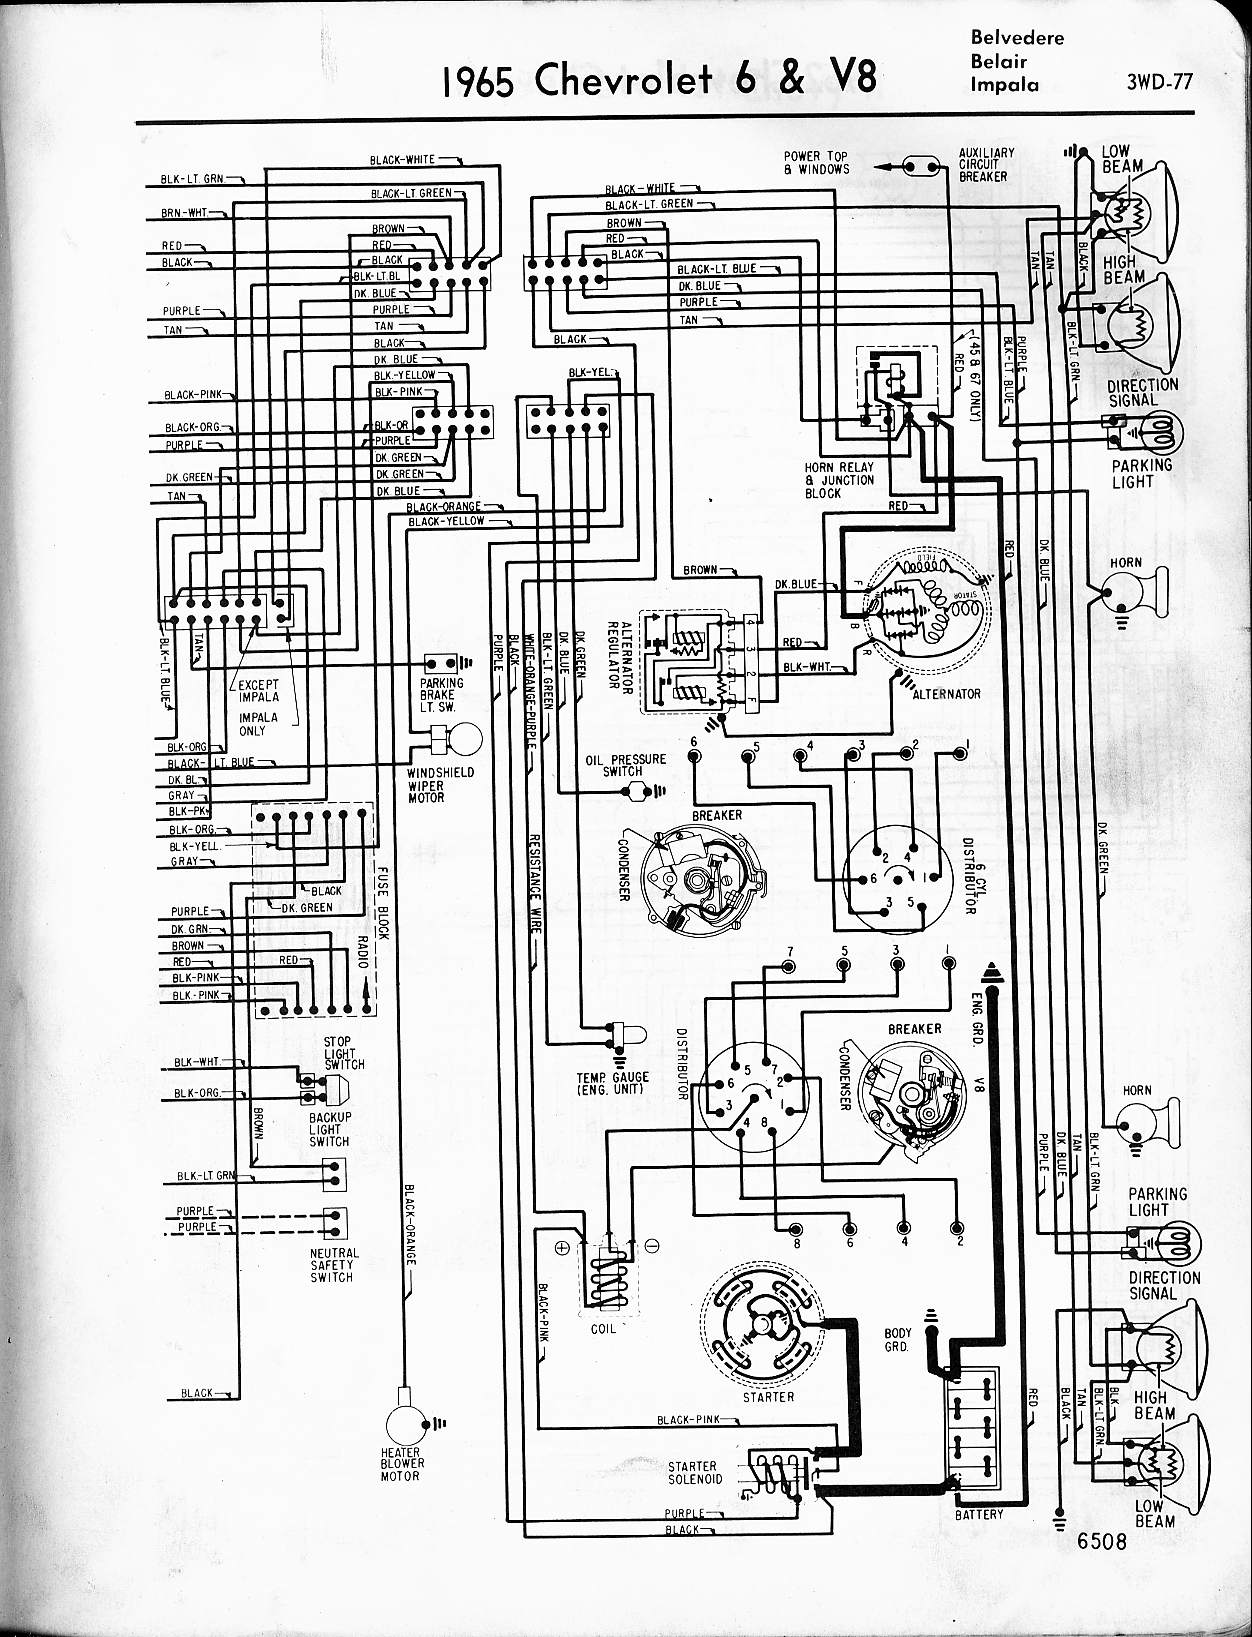 1969 chevy truck wiring harness wiring diagram schematics1969 chevy c10 wiring harness wiring diagram database 1957 chevy wiring harness 1969 chevy truck engine